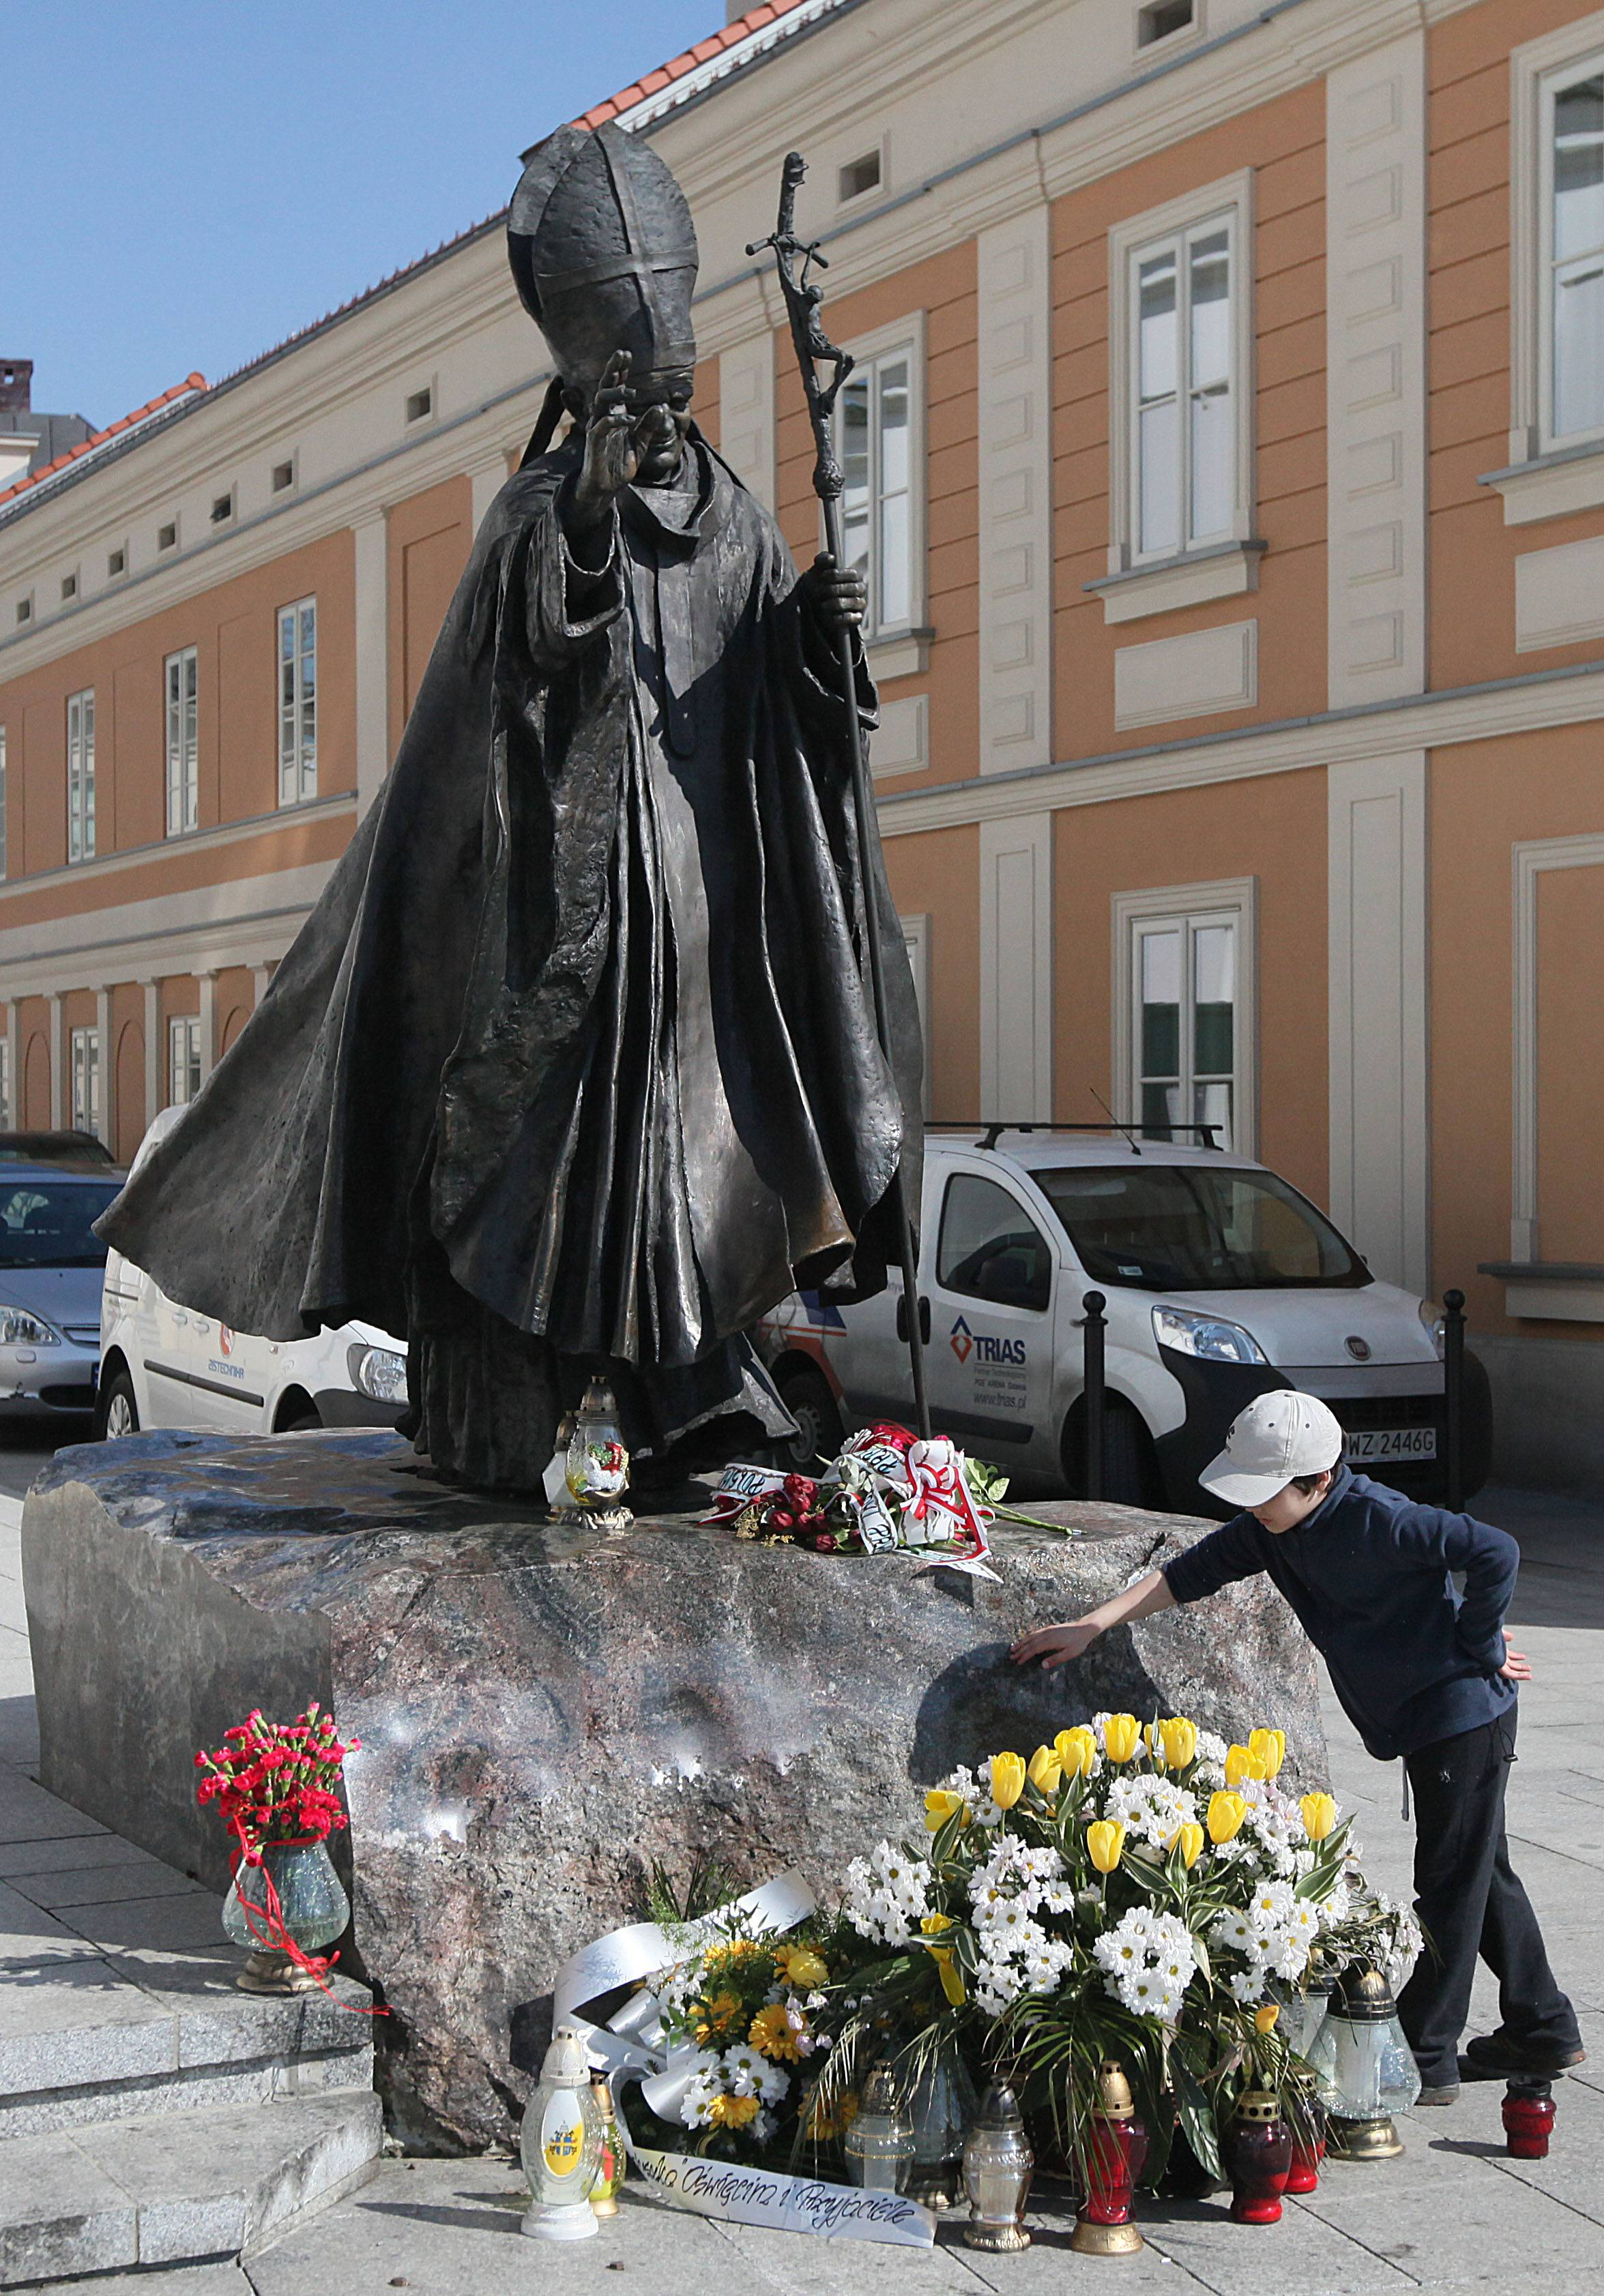 The figure of blessed Pope John Paul II is pictured before the Holy Mary' Offering Basilica where he was baptized as an infant in Wadowice, Poland, on Monday, April 7, 2014. The basilica neighbors the house where the pope was born as Karol Wojtyla in 1920 and where a multimedia museum will open in his memory on Wednesday, just over two weeks before he will be made a saint in a Vatican ceremony April 27.